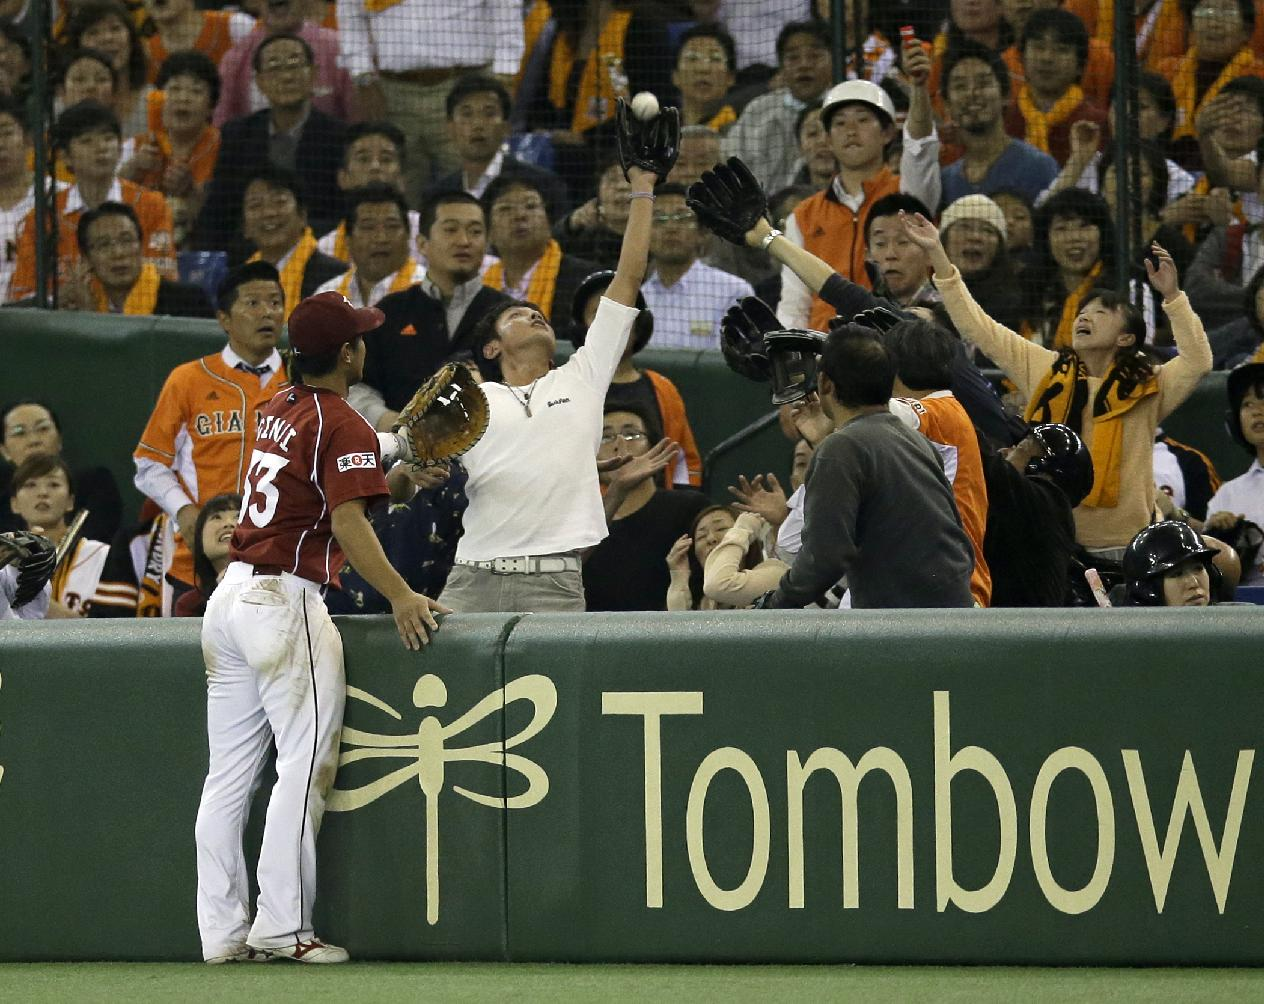 Rakuten Eagles first baseman Ginji Akaminai looks at a fan catch a foul fly in the 10th inning of Game 5 of baseball's Japan Series against the Yomiuri Giants at Tokyo Dome in Tokyo, Thursday, Oct. 31, 2013